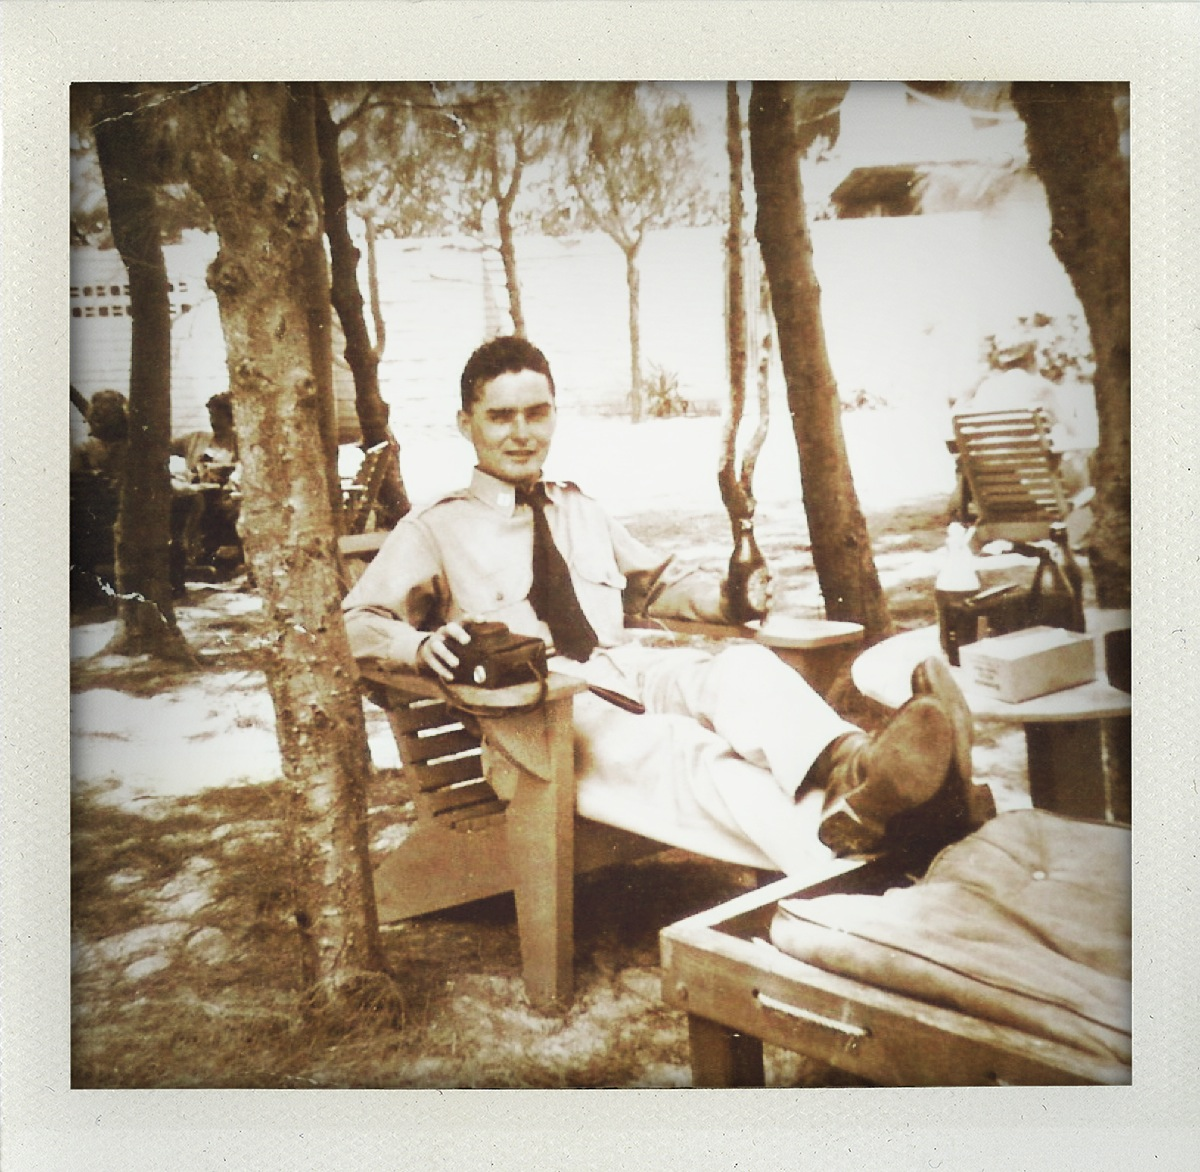 My grandfather in the South Pacific.